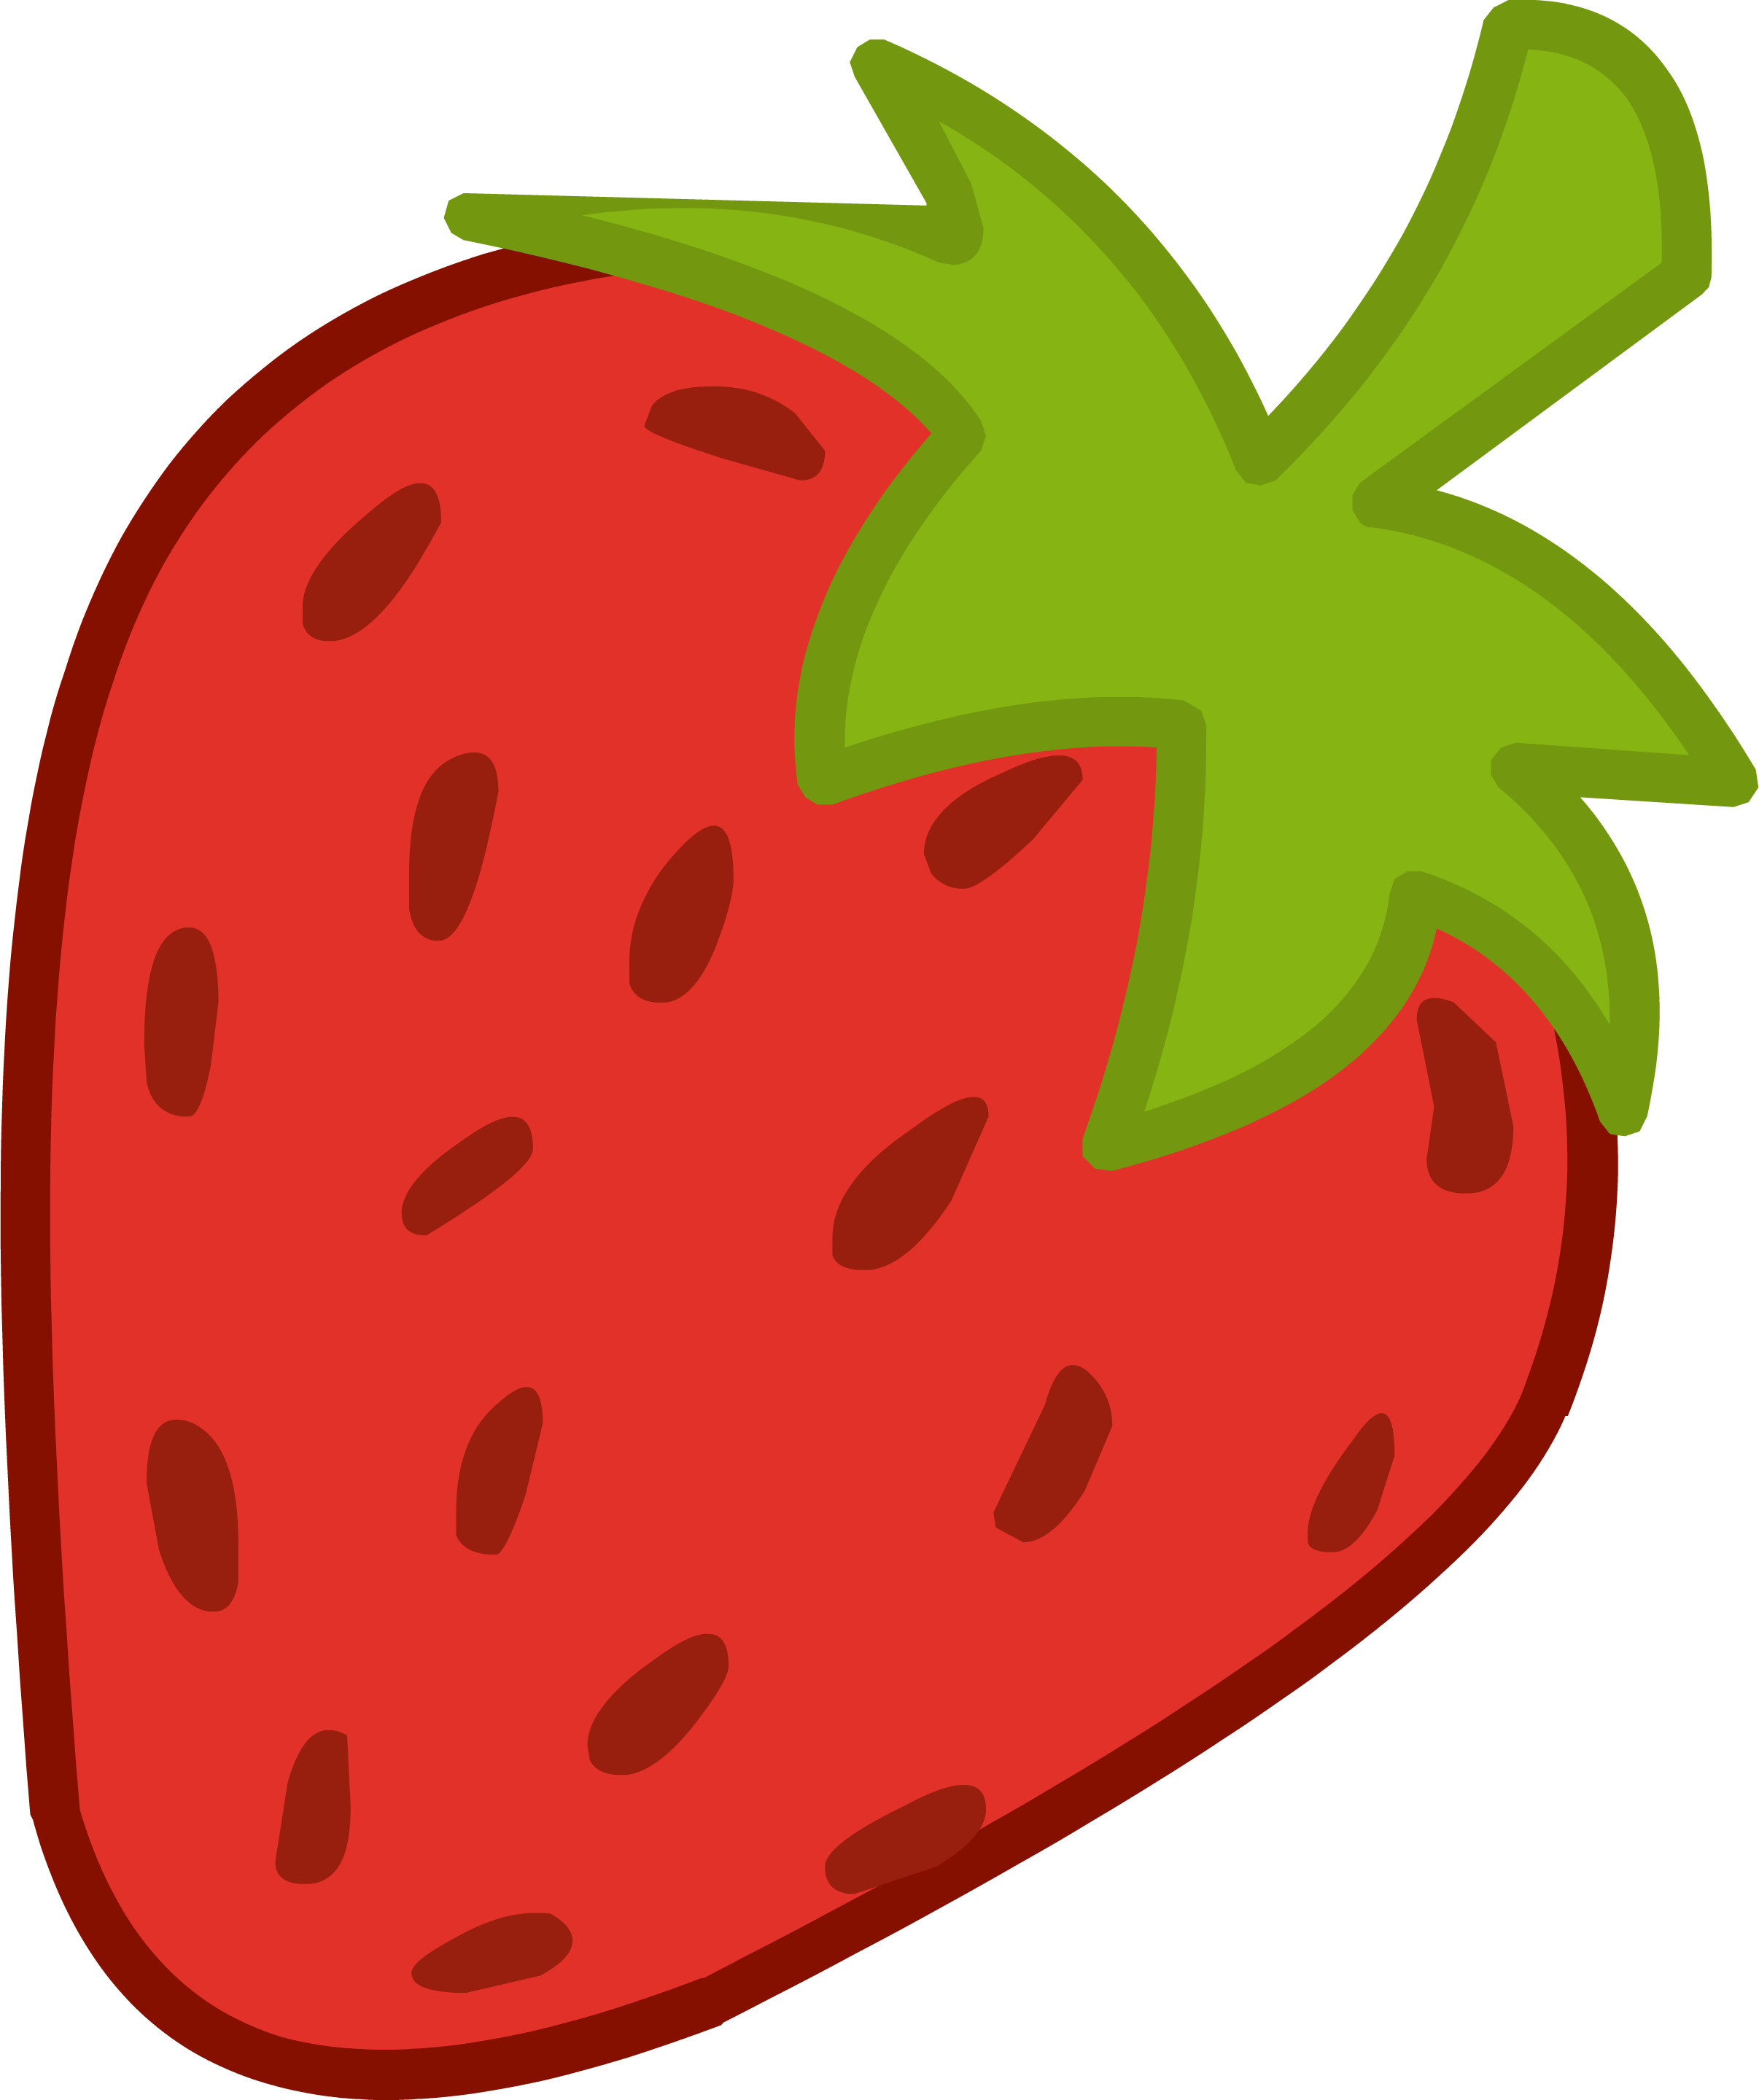 strawberryshortcakeclipartfreeclipartimages.png